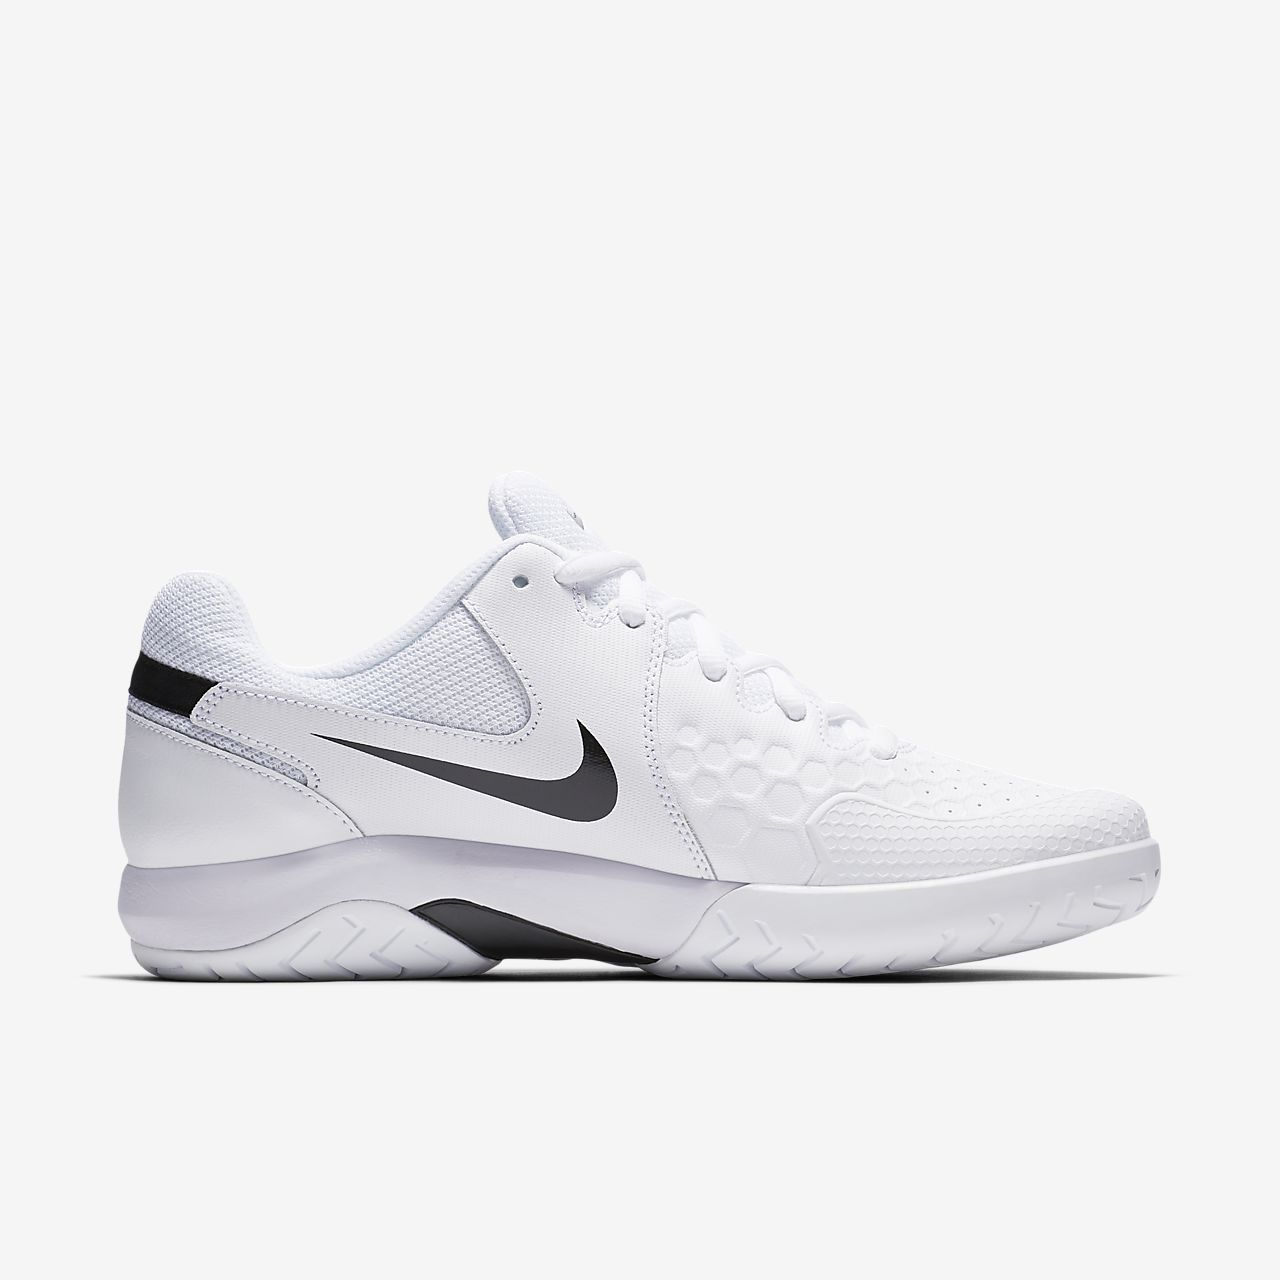 best cheap 90700 51aba nikecourt-air-zoom-resistance-hard-court-tennis-shoe-rJTGAGEP.jpg